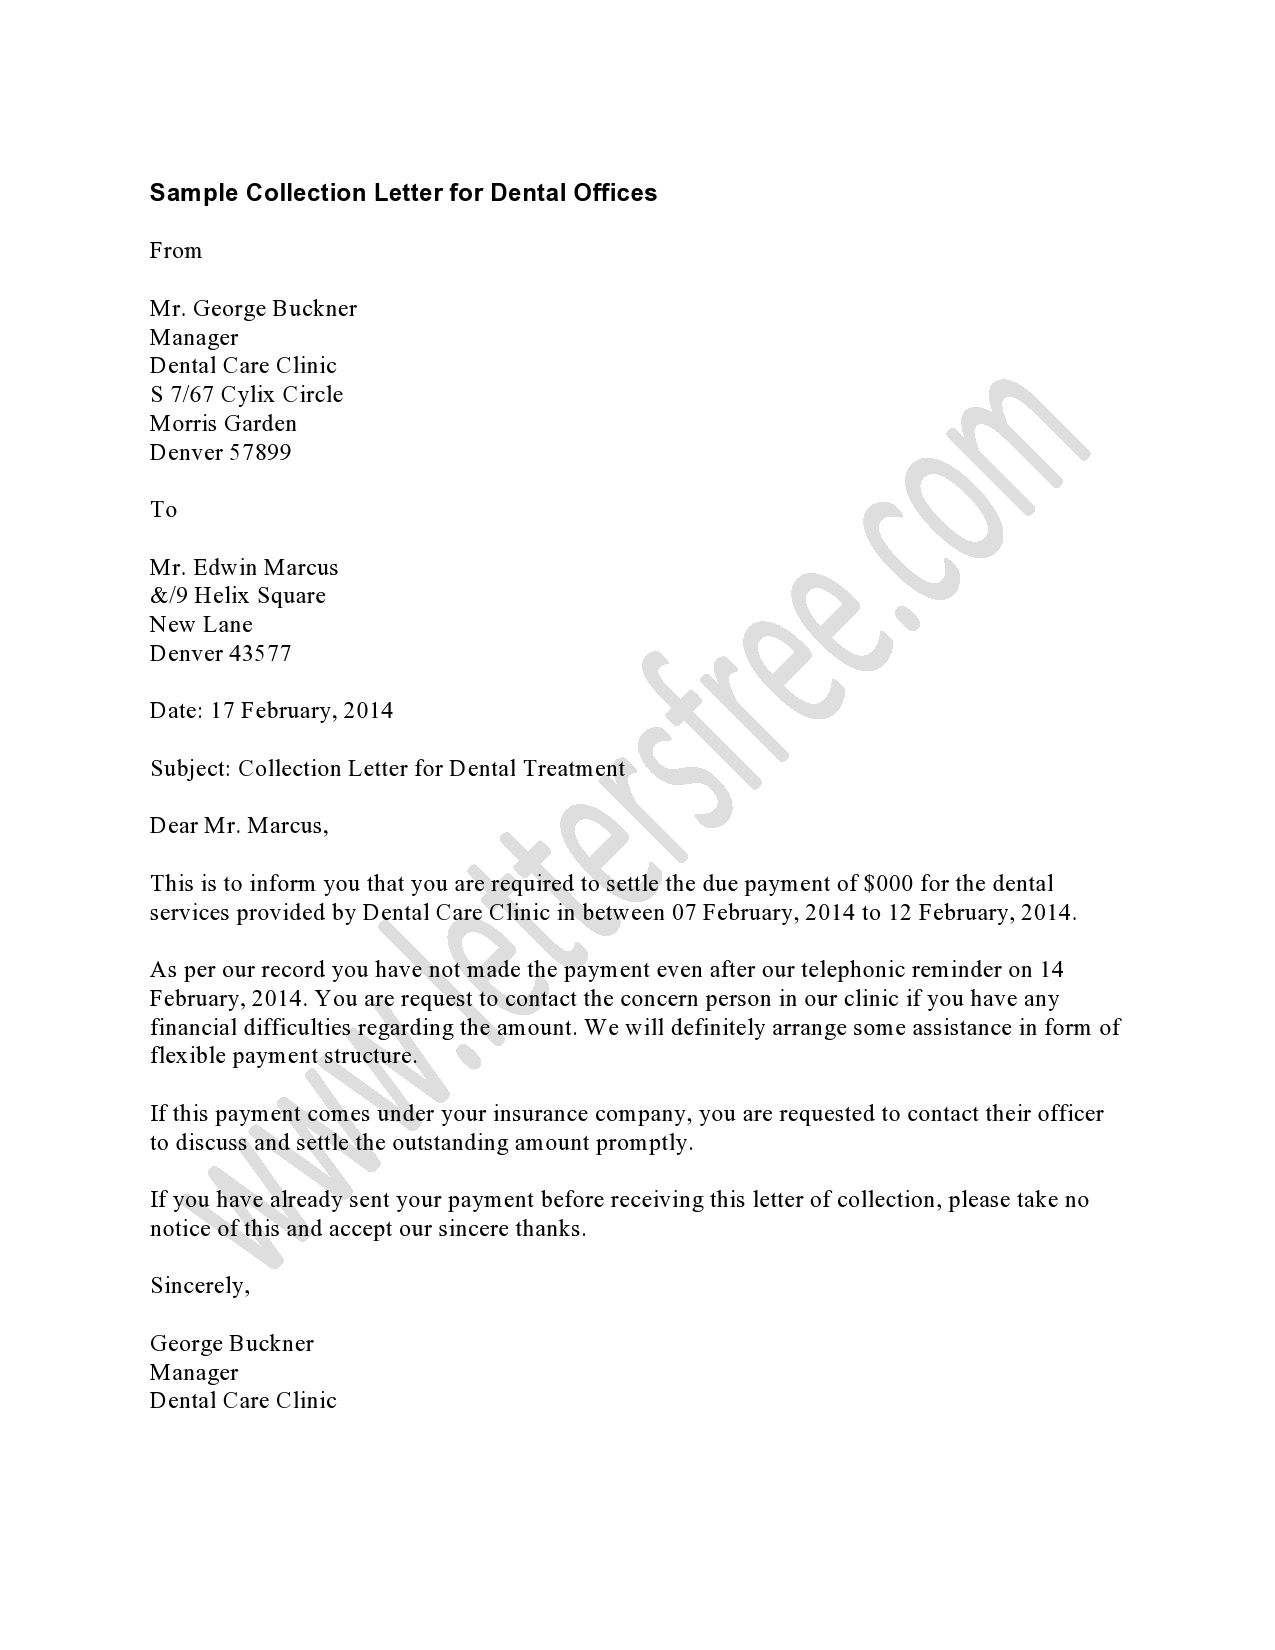 Patient Recall Letter Template - the Dental Collection Letter Should Be Used as A First Late Notice